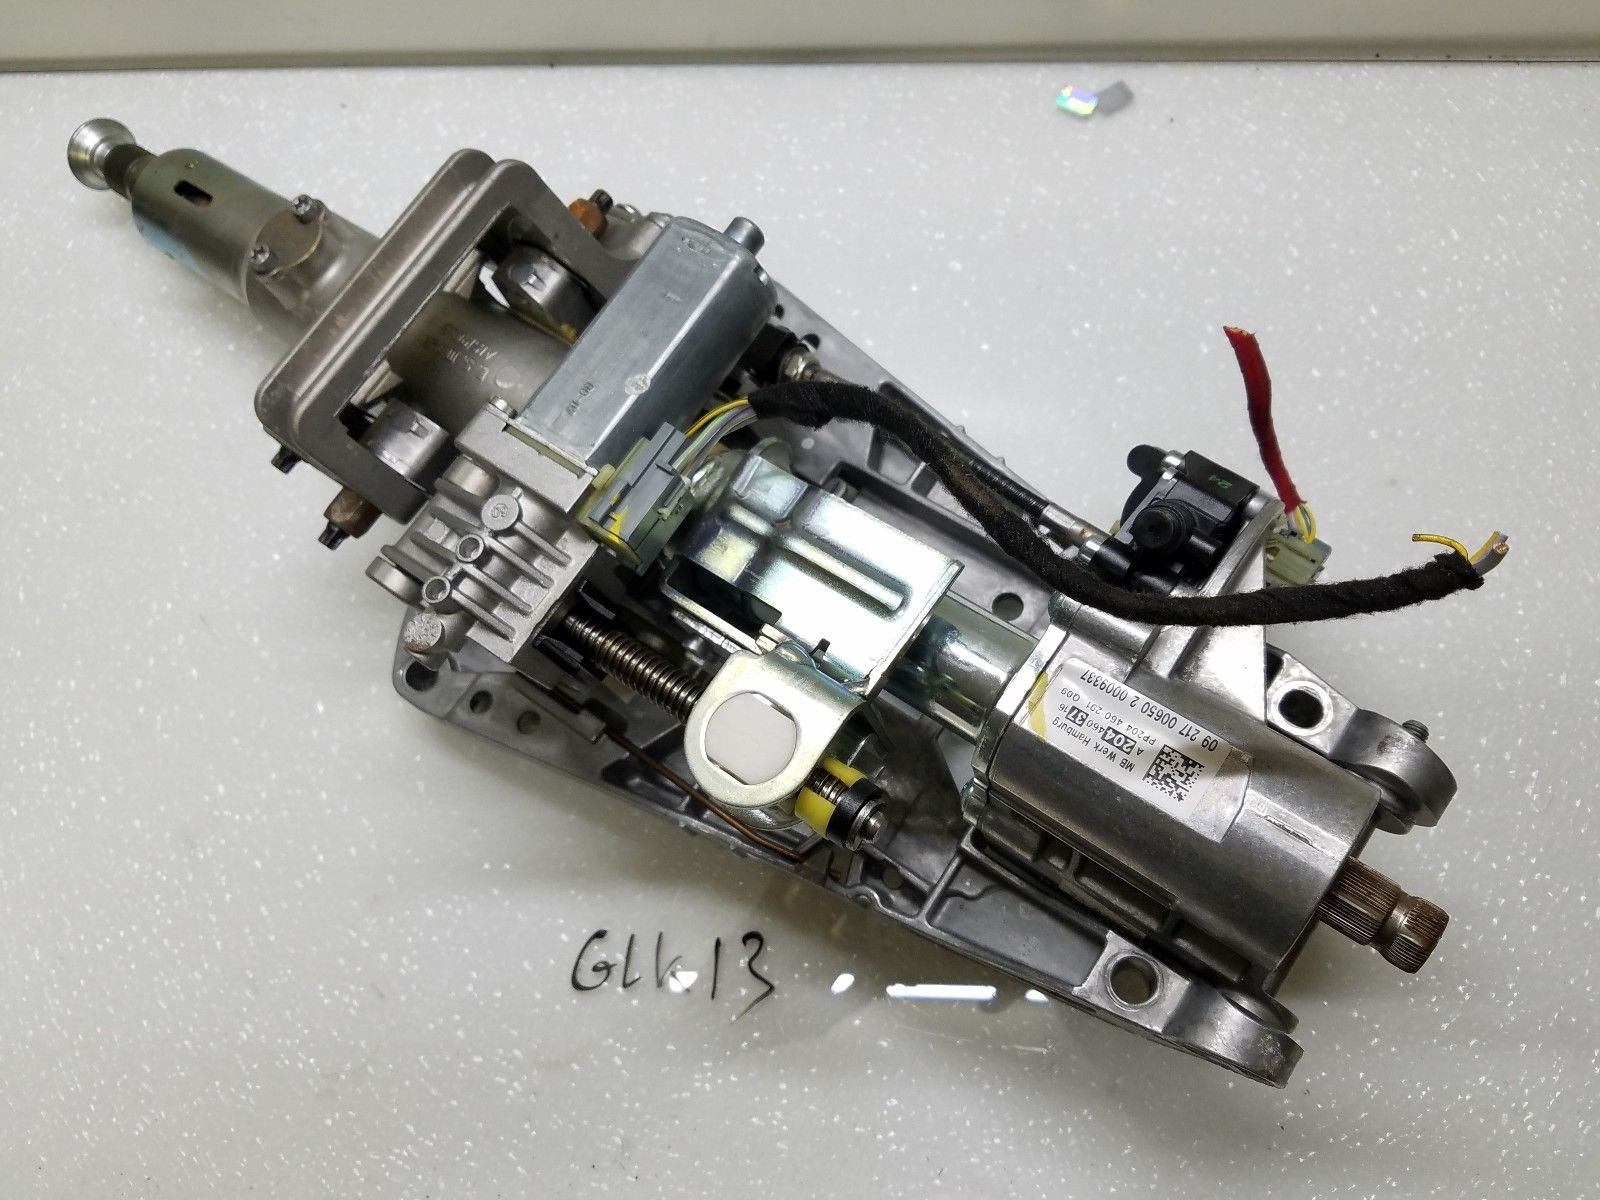 2010-2012 Mercedes GLK350 POWER STEERING COLUMN W/ MOTOR OEM 2044603716 Does not apply